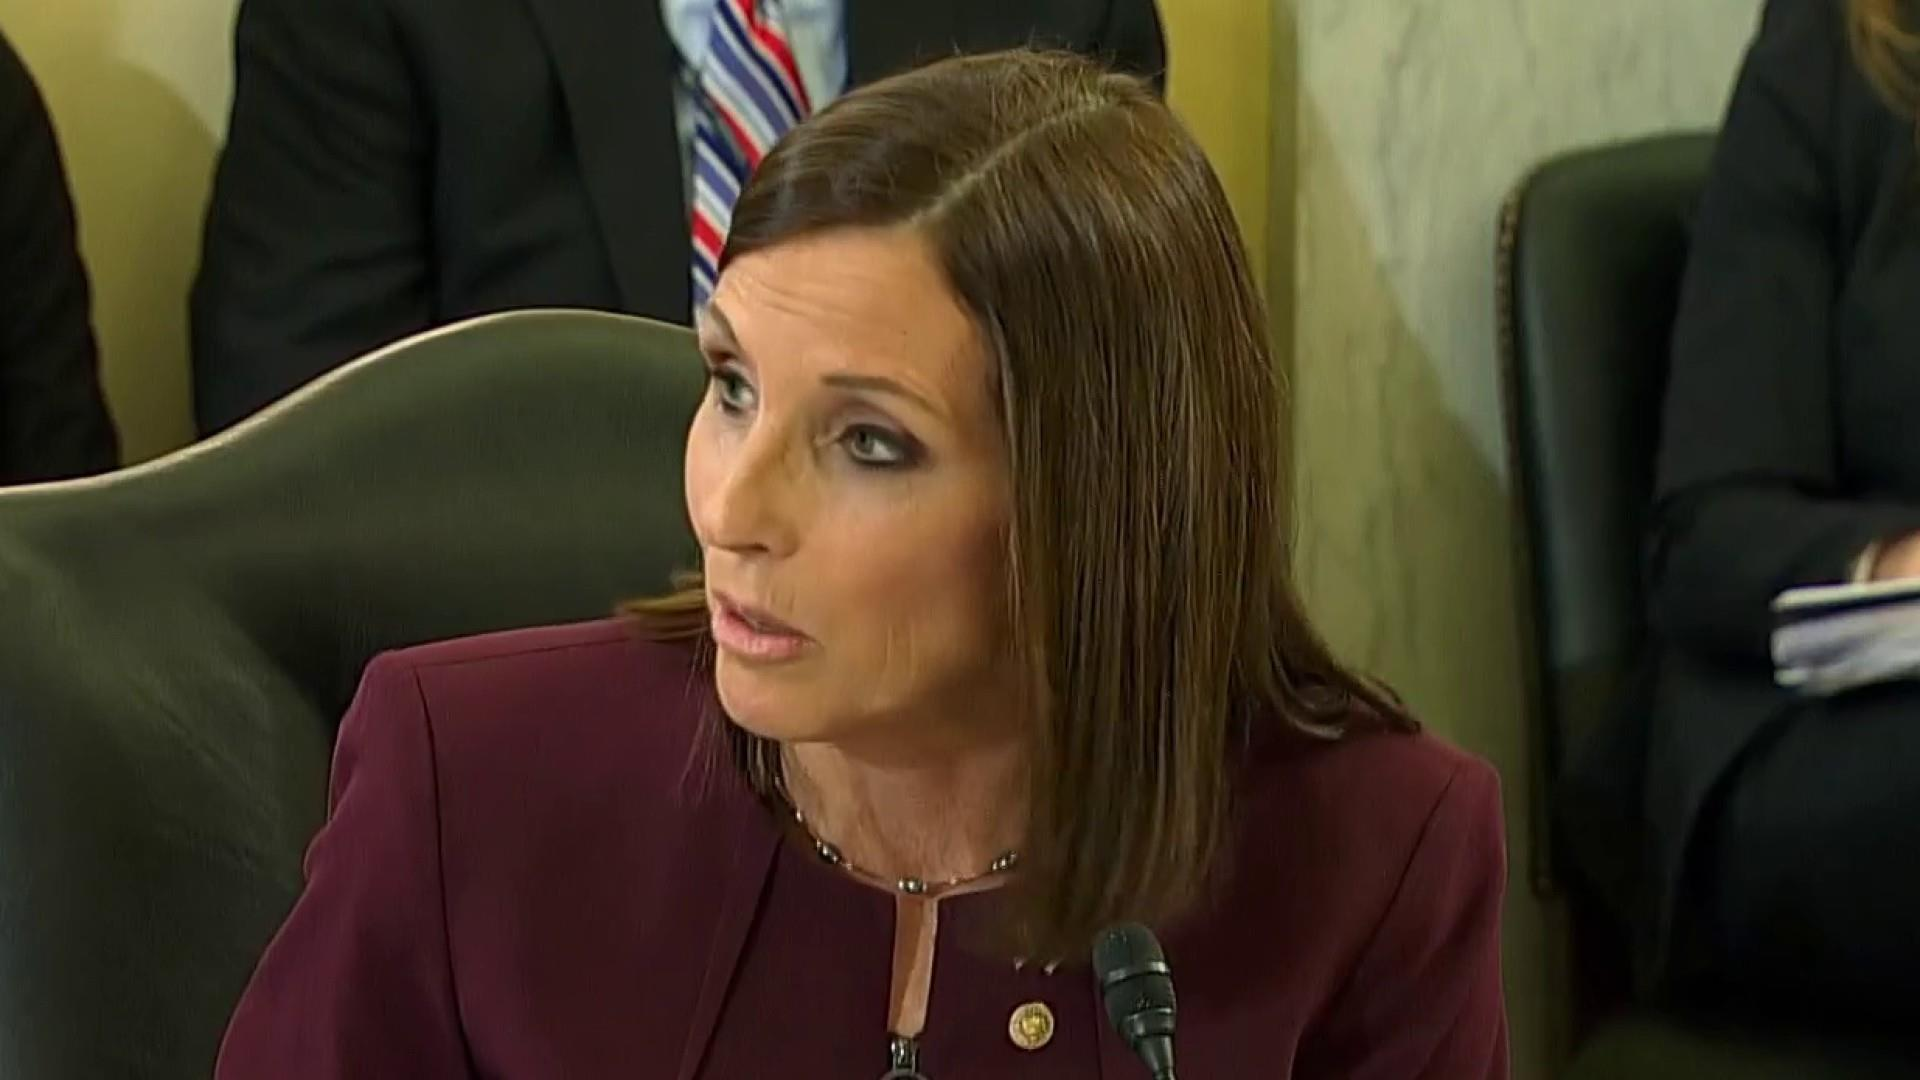 Sen. McSally says she was raped by a superior in the Air Force